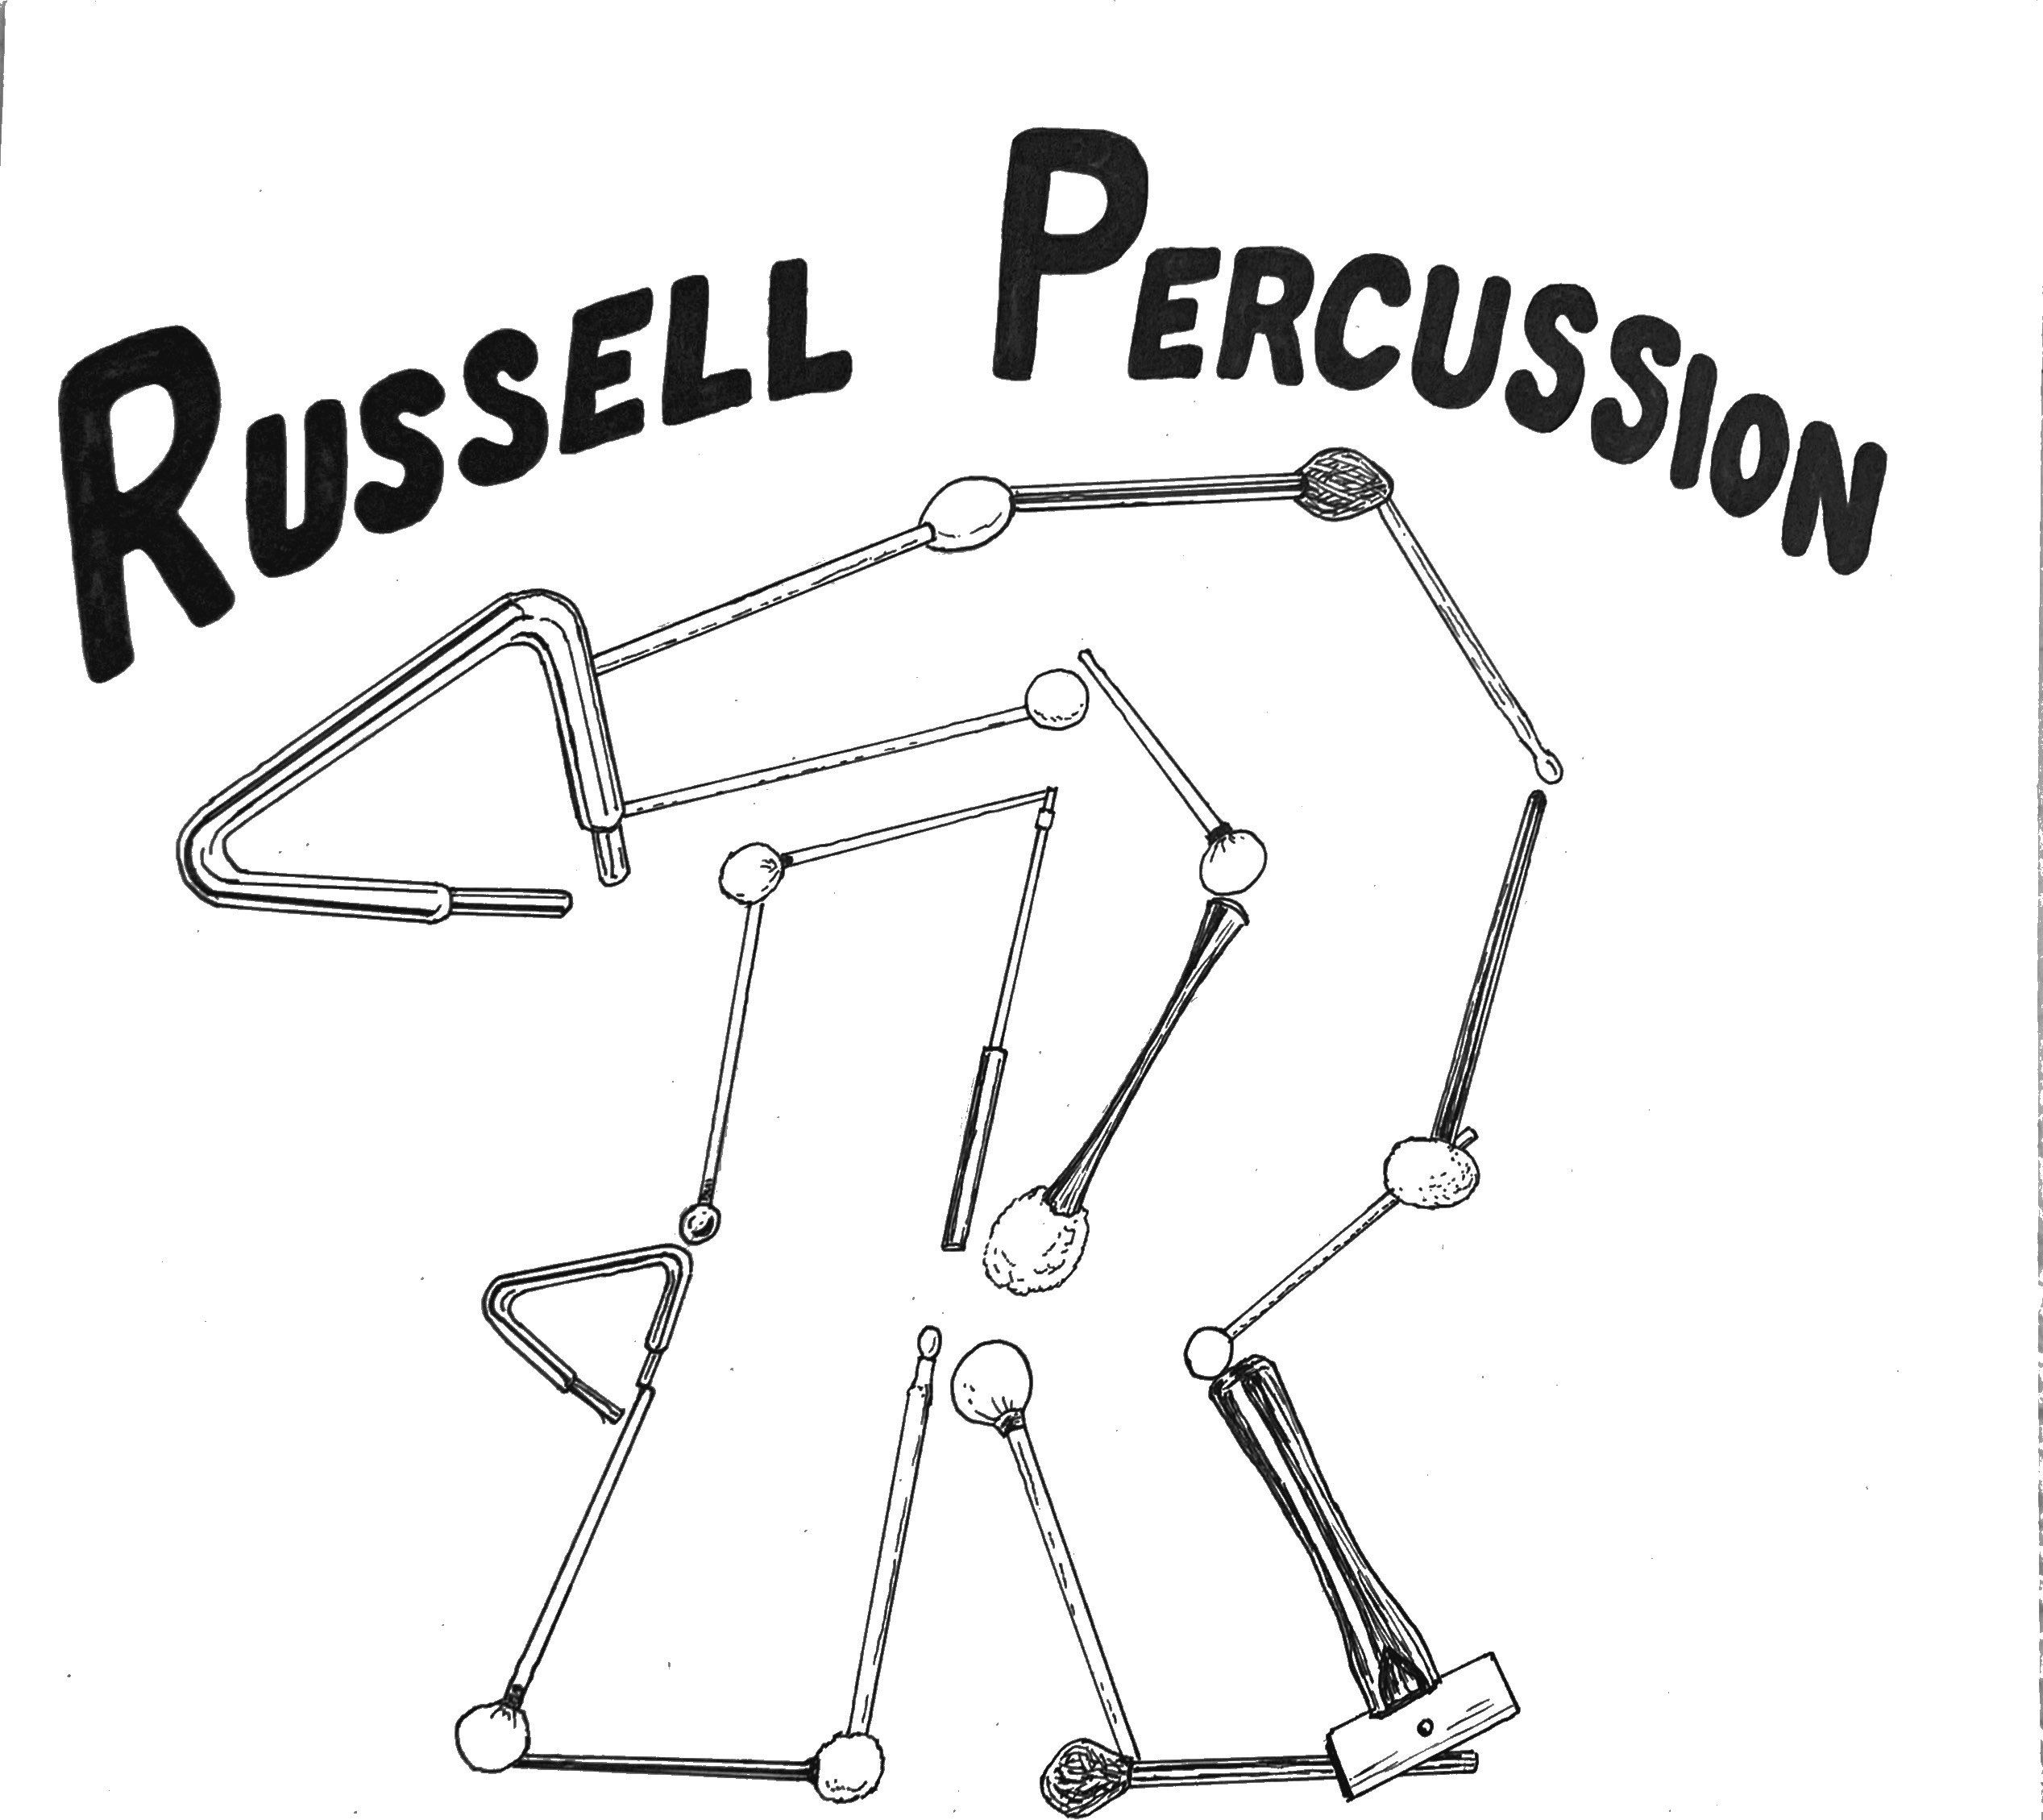 Russell Percussion logo